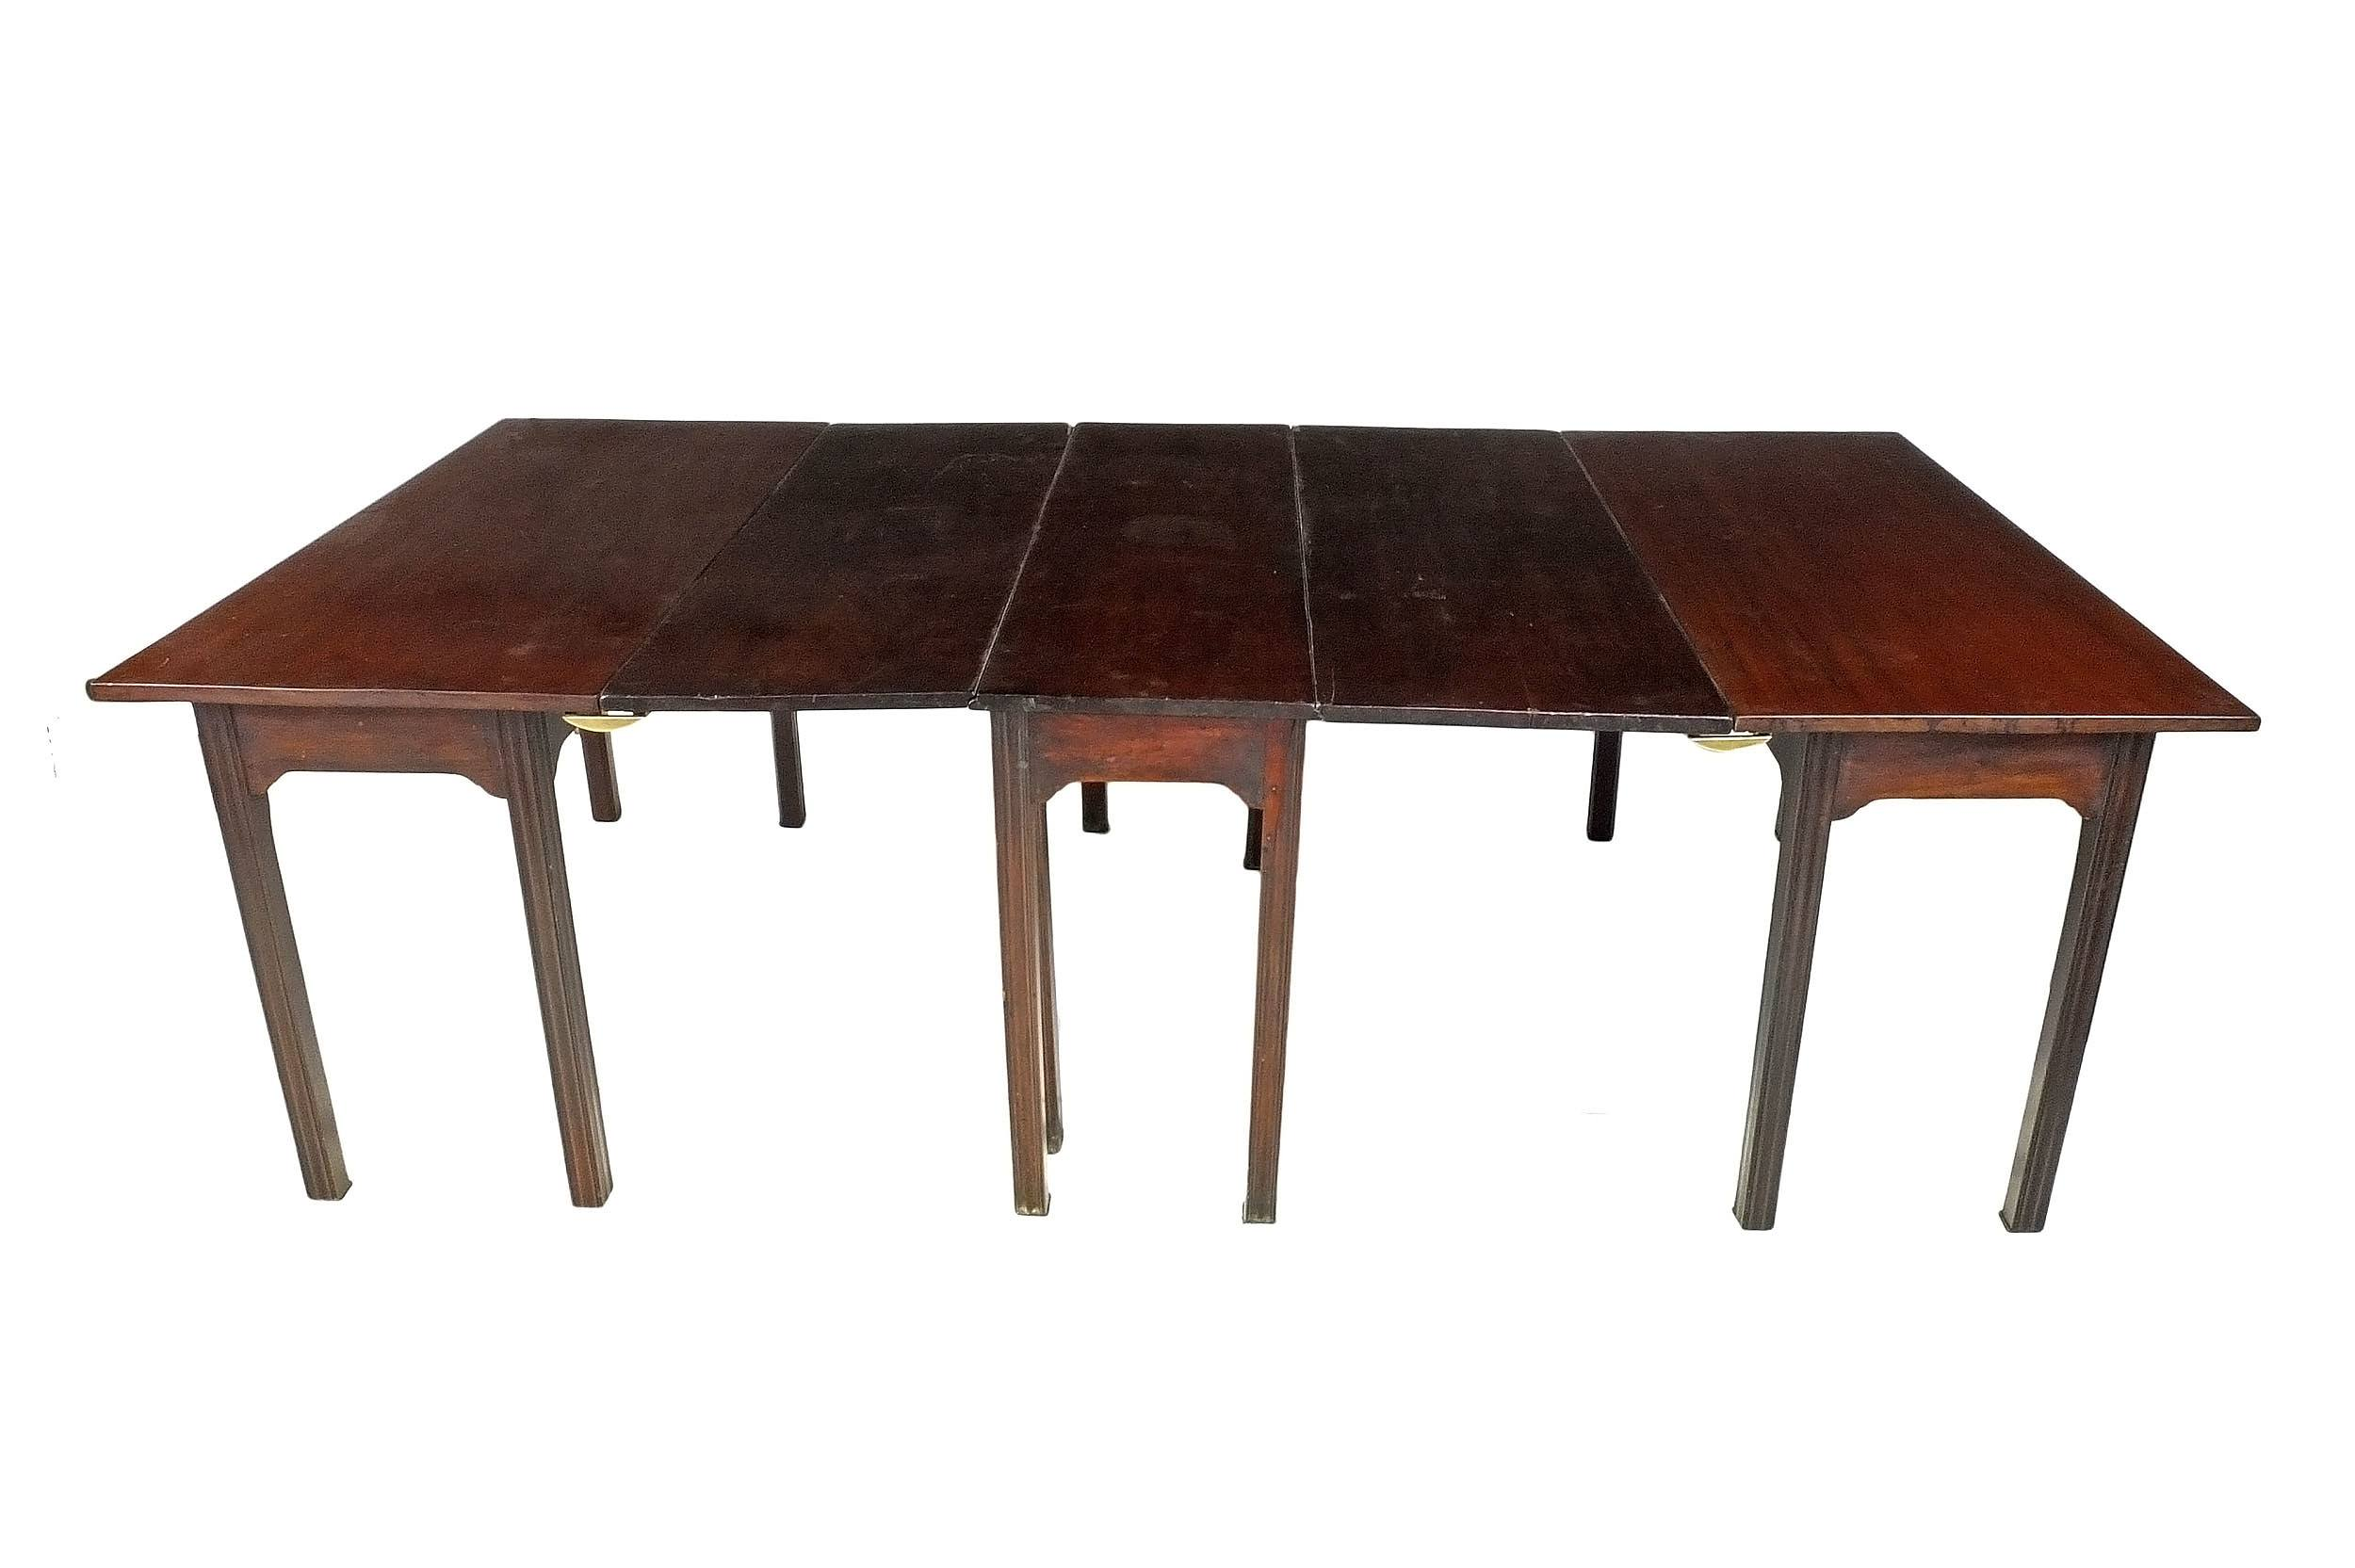 '18th Century English Jamaican Mahogany Gateleg Dining Table with Two Later Matching Detachable End Tables'